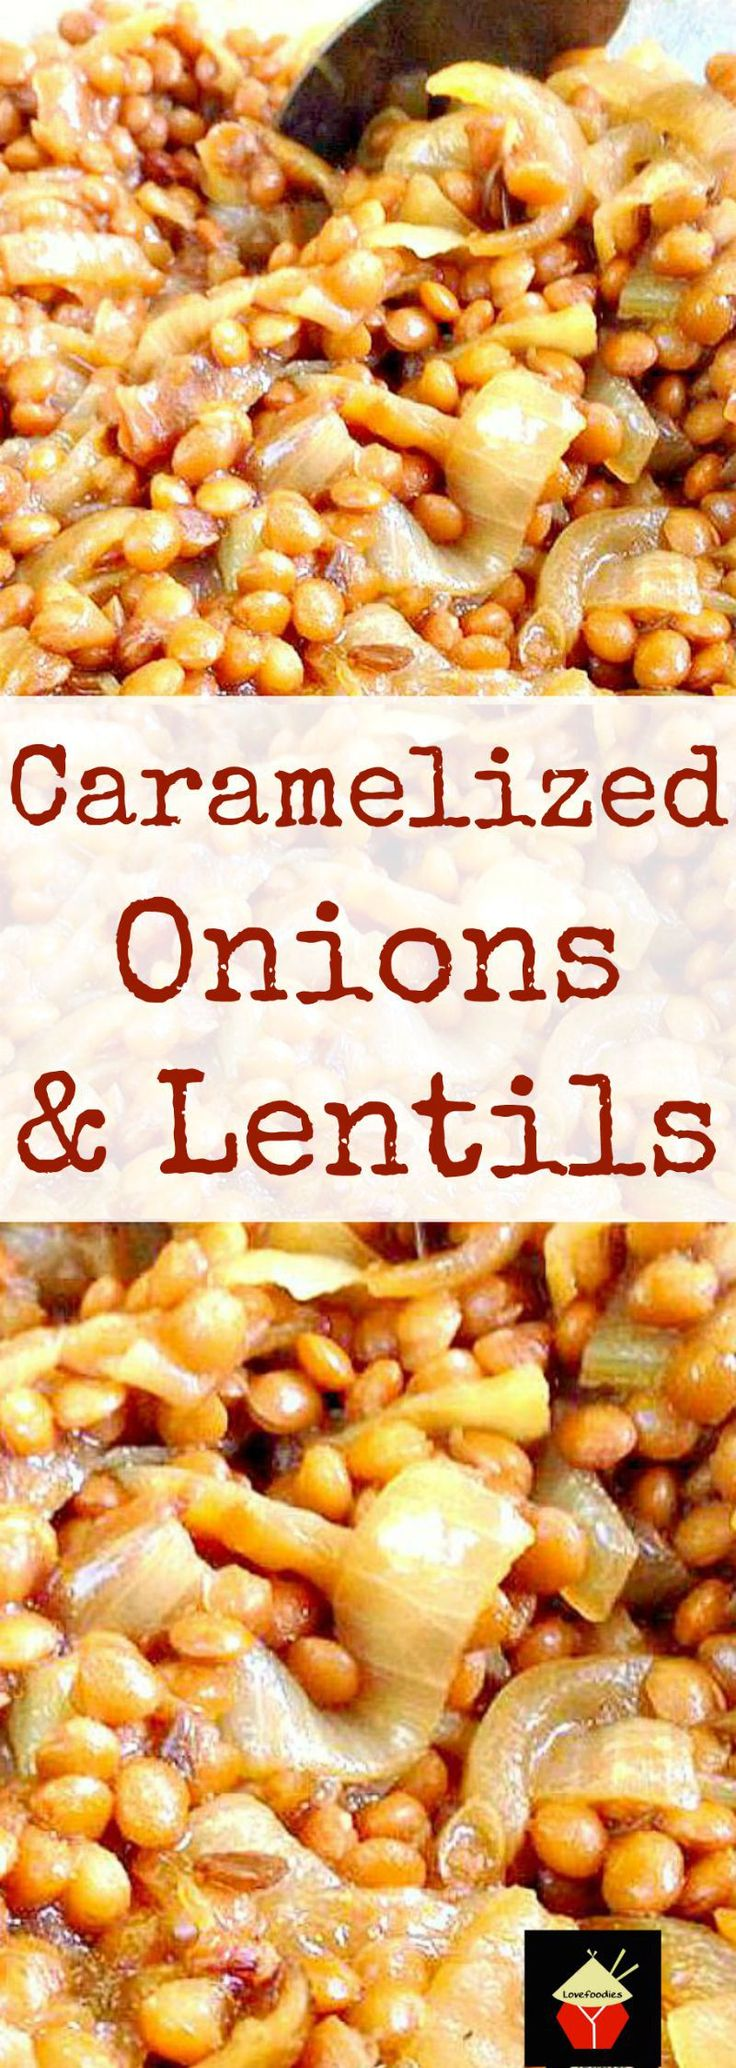 Caramelized Onions and Lentils. Easy recipe with delicious results! Perfect for your holiday dinners!